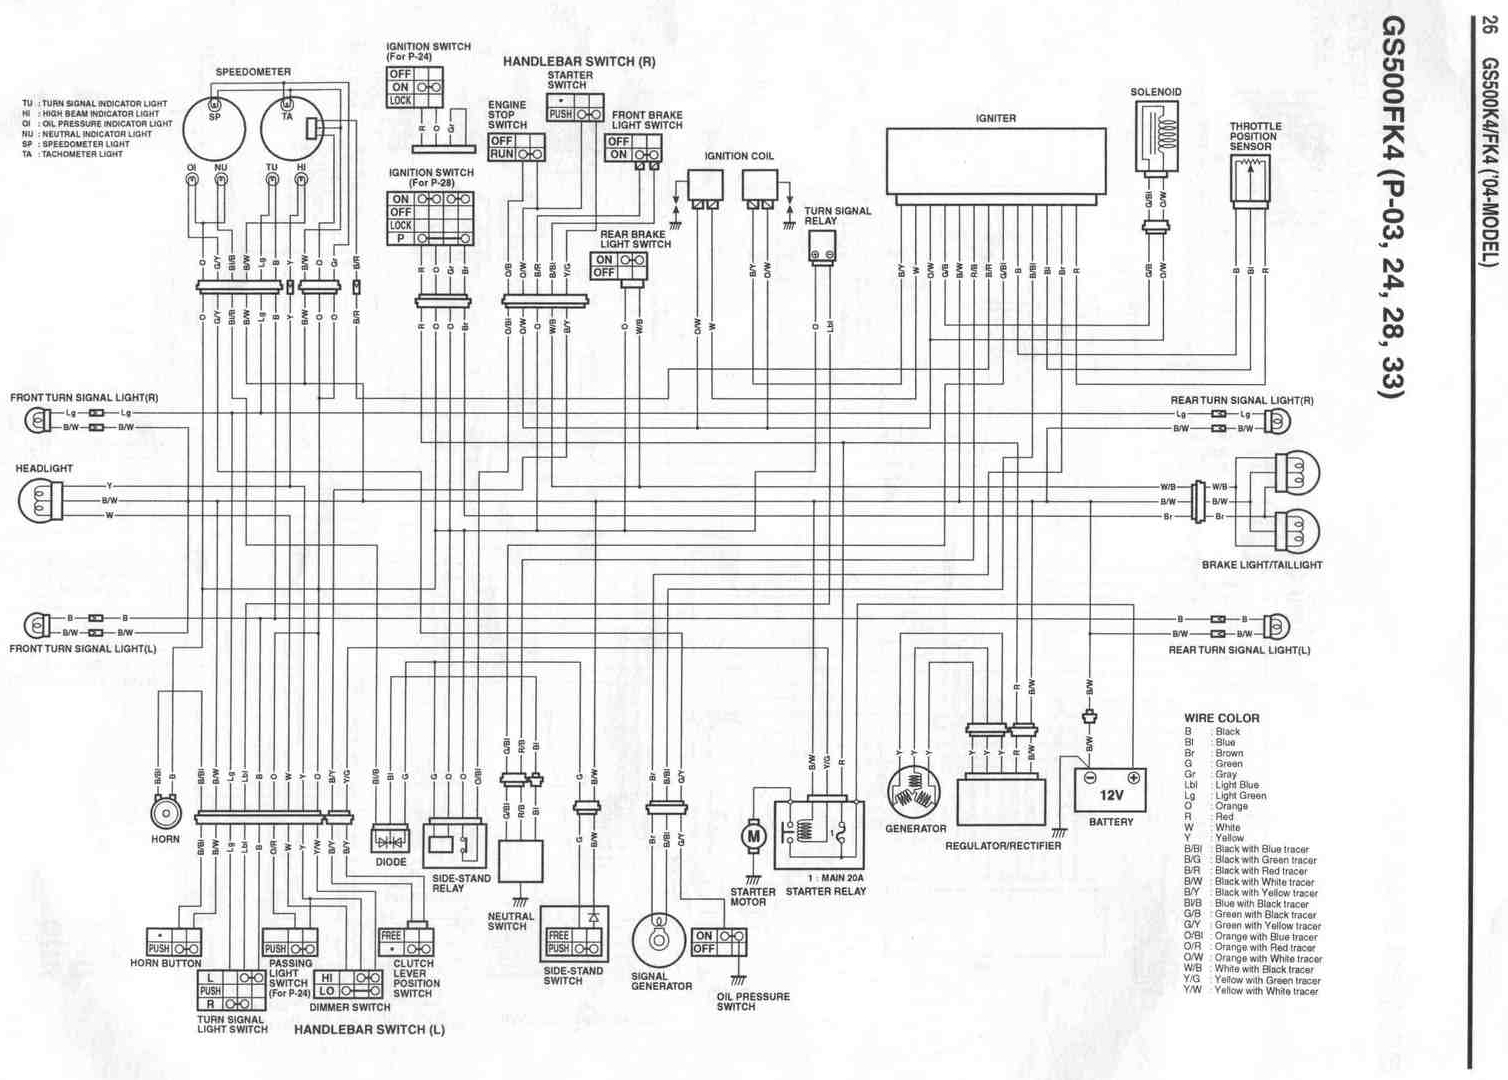 suzuki gs500 wiring diagram suzuki gs 650 wiring diagram | wiring diagram